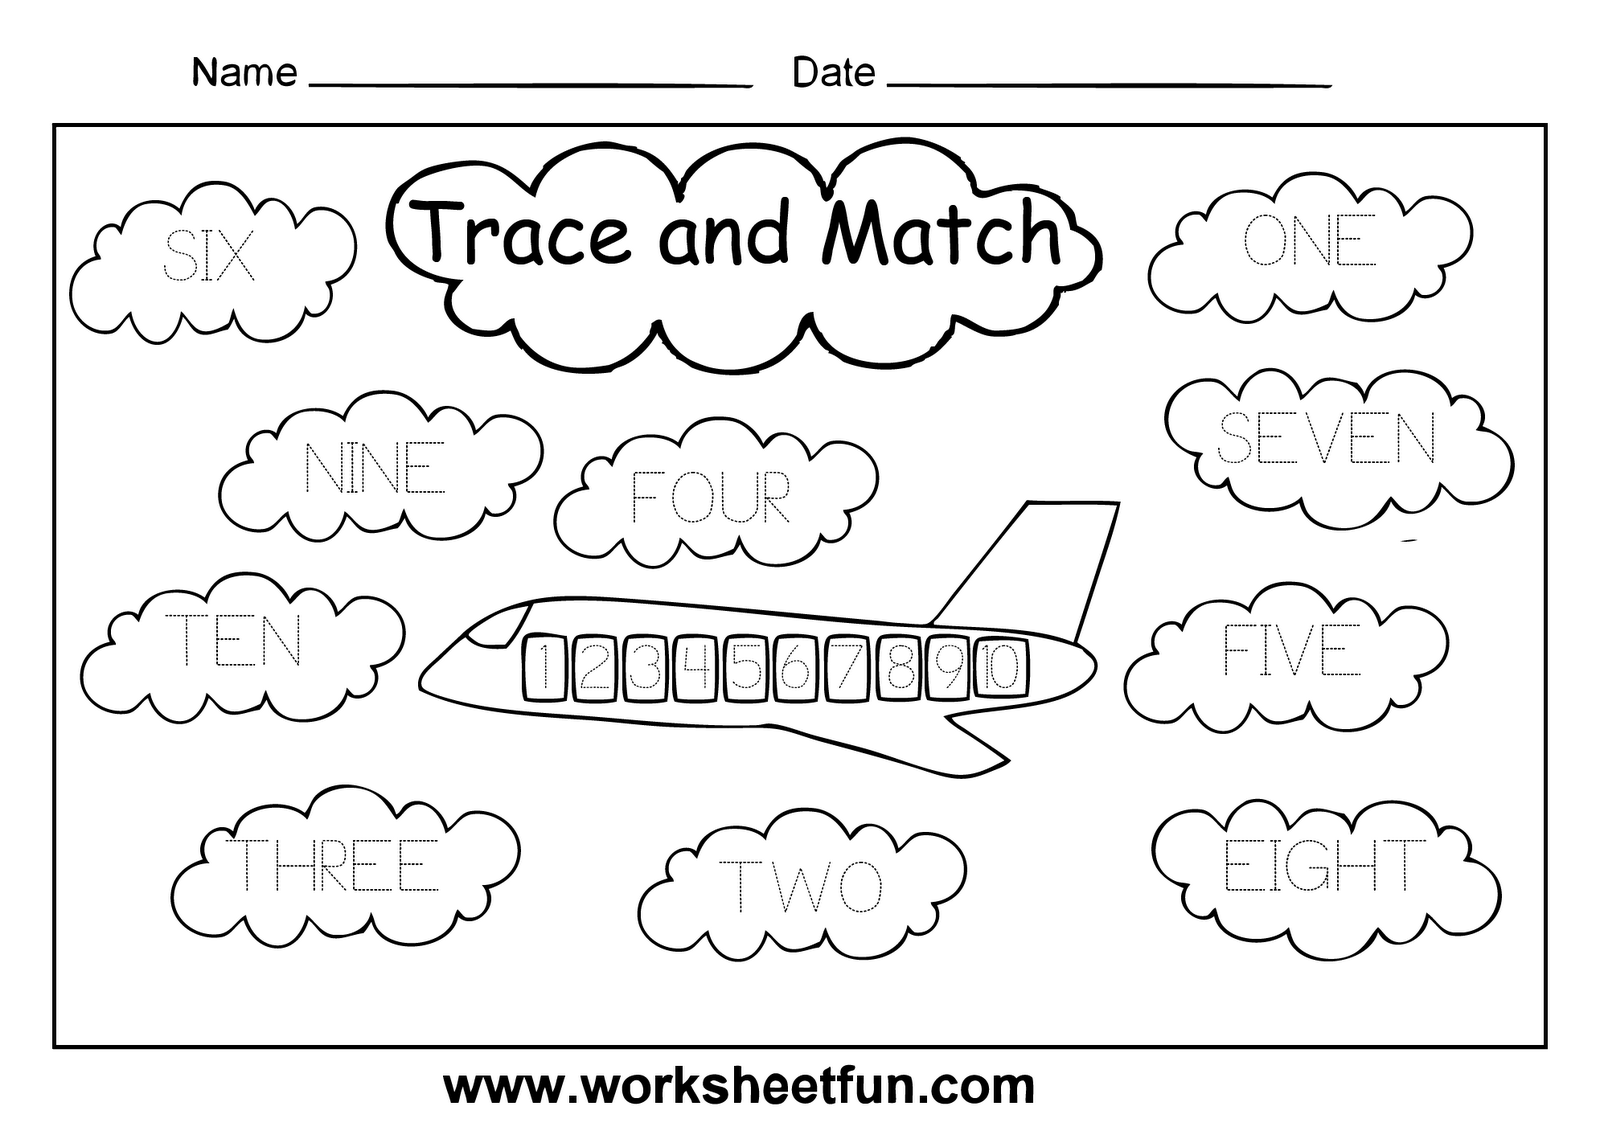 Weirdmailus  Gorgeous Worksheet Numbers    Reocurent With Gorgeous Letter Recognition Worksheets Free Besides Percentage Worksheets Year  Furthermore Hard Division Worksheets With Extraordinary Easter Themed Worksheets Also Esl Synonyms And Antonyms Worksheets In Addition Personification Worksheets Grade  And Rhyming Word Worksheets For Kindergarten As Well As Writing Worksheet For Preschool Additionally Australian Government Worksheets From Reocurentcom With Weirdmailus  Gorgeous Worksheet Numbers    Reocurent With Extraordinary Letter Recognition Worksheets Free Besides Percentage Worksheets Year  Furthermore Hard Division Worksheets And Gorgeous Easter Themed Worksheets Also Esl Synonyms And Antonyms Worksheets In Addition Personification Worksheets Grade  From Reocurentcom